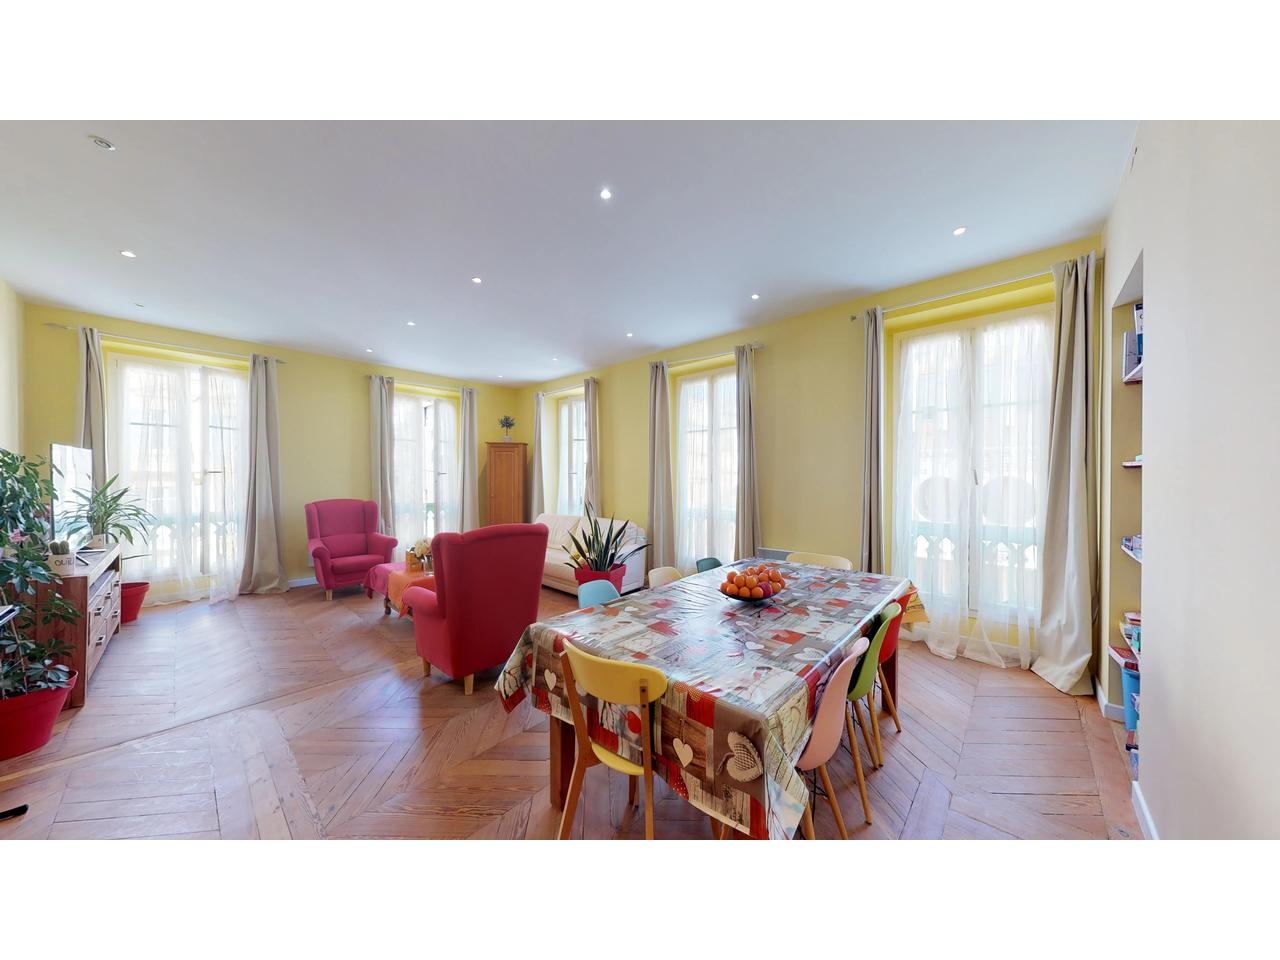 Appartement  5 Rooms 144m2  for sale